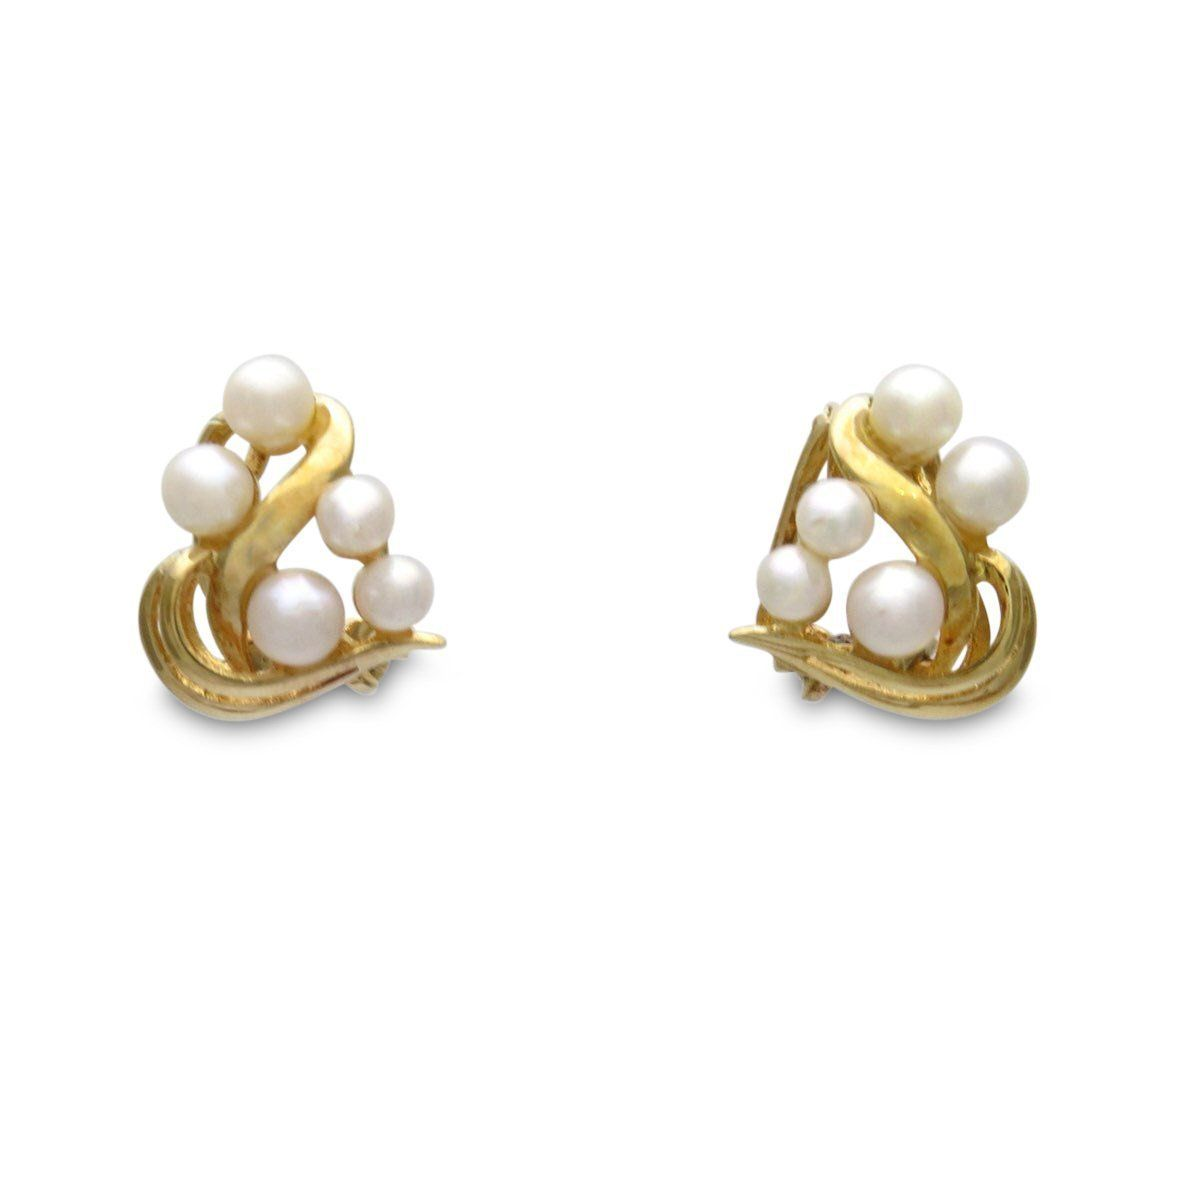 2008295a4 14k Gold Cultured Pearls Clip Earrings, Vintage, 1930s to 1980s Designed as  a wave and bubbles, these beautiful vintage petite clip earrings are set  with 5 ...